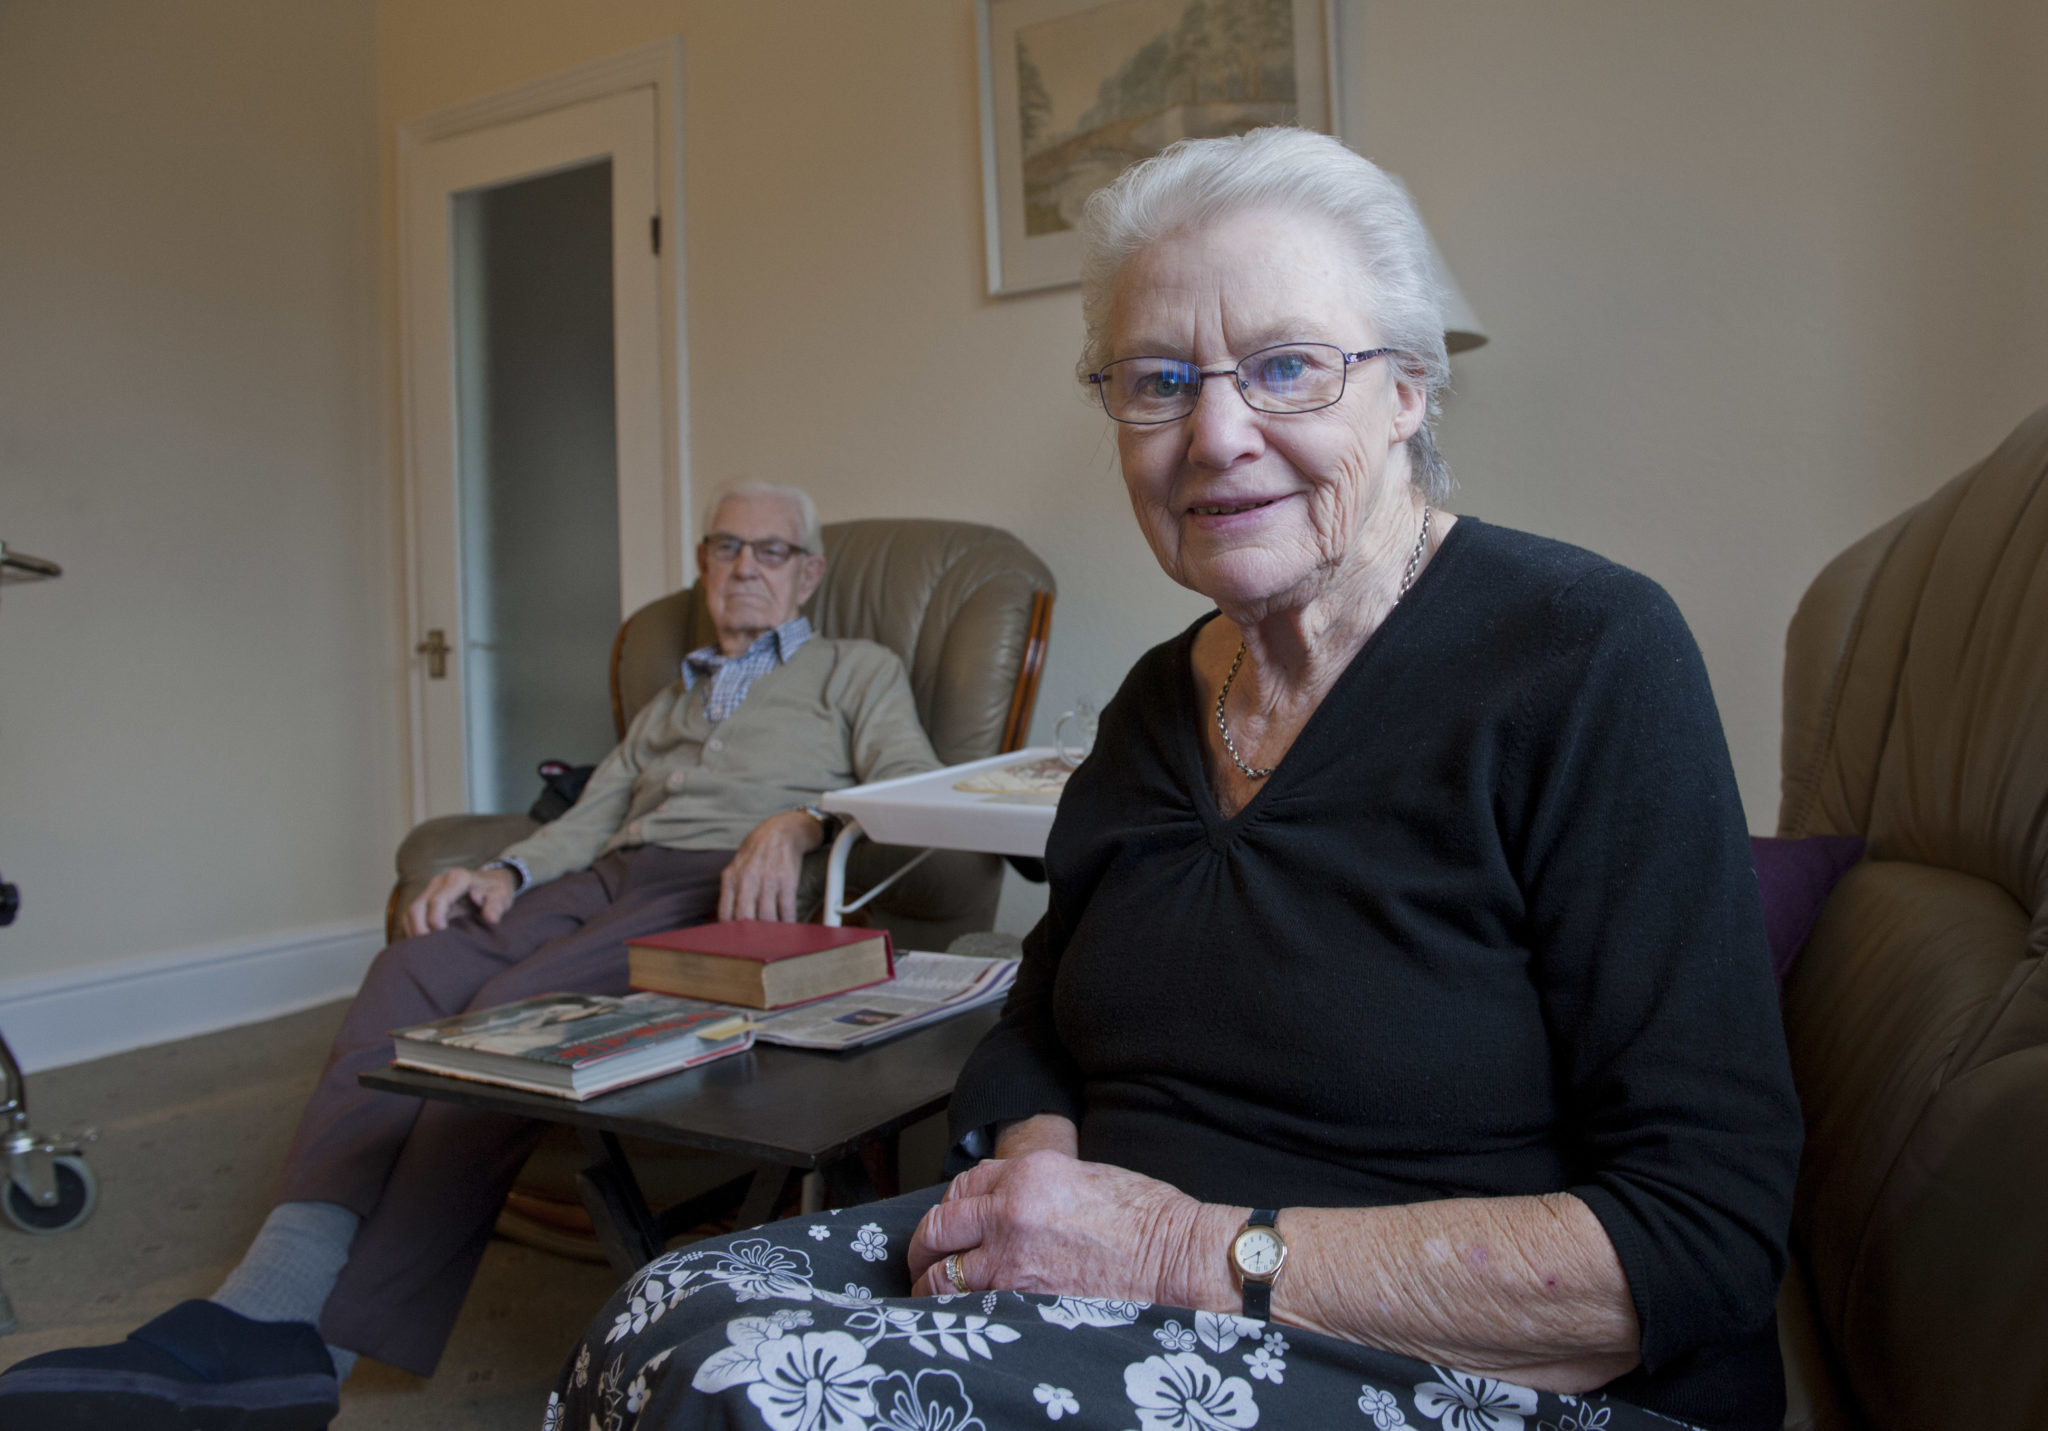 Pensioner compensated after Sainsbury's fall left her struggling to care for husband